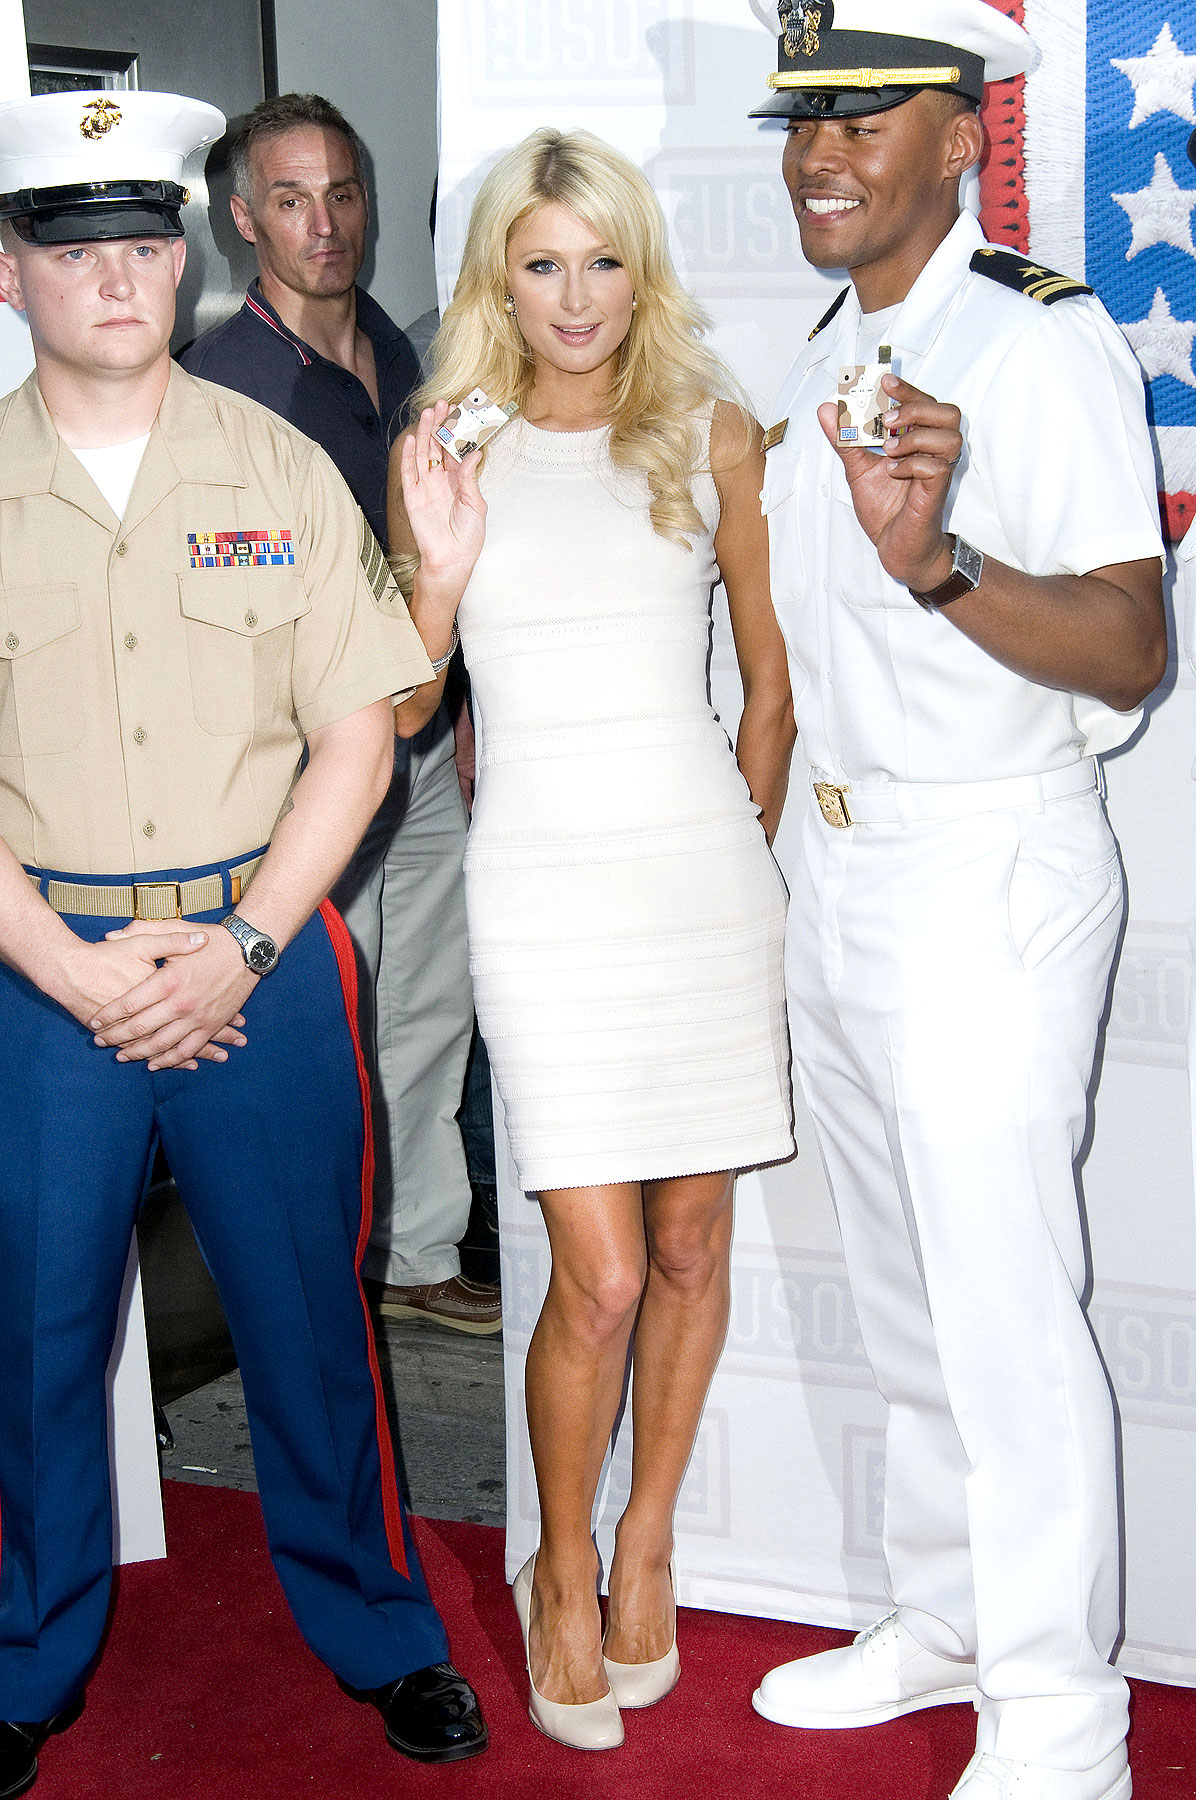 Paris And Nicky Hilton Salute The Troops (PHOTOS)